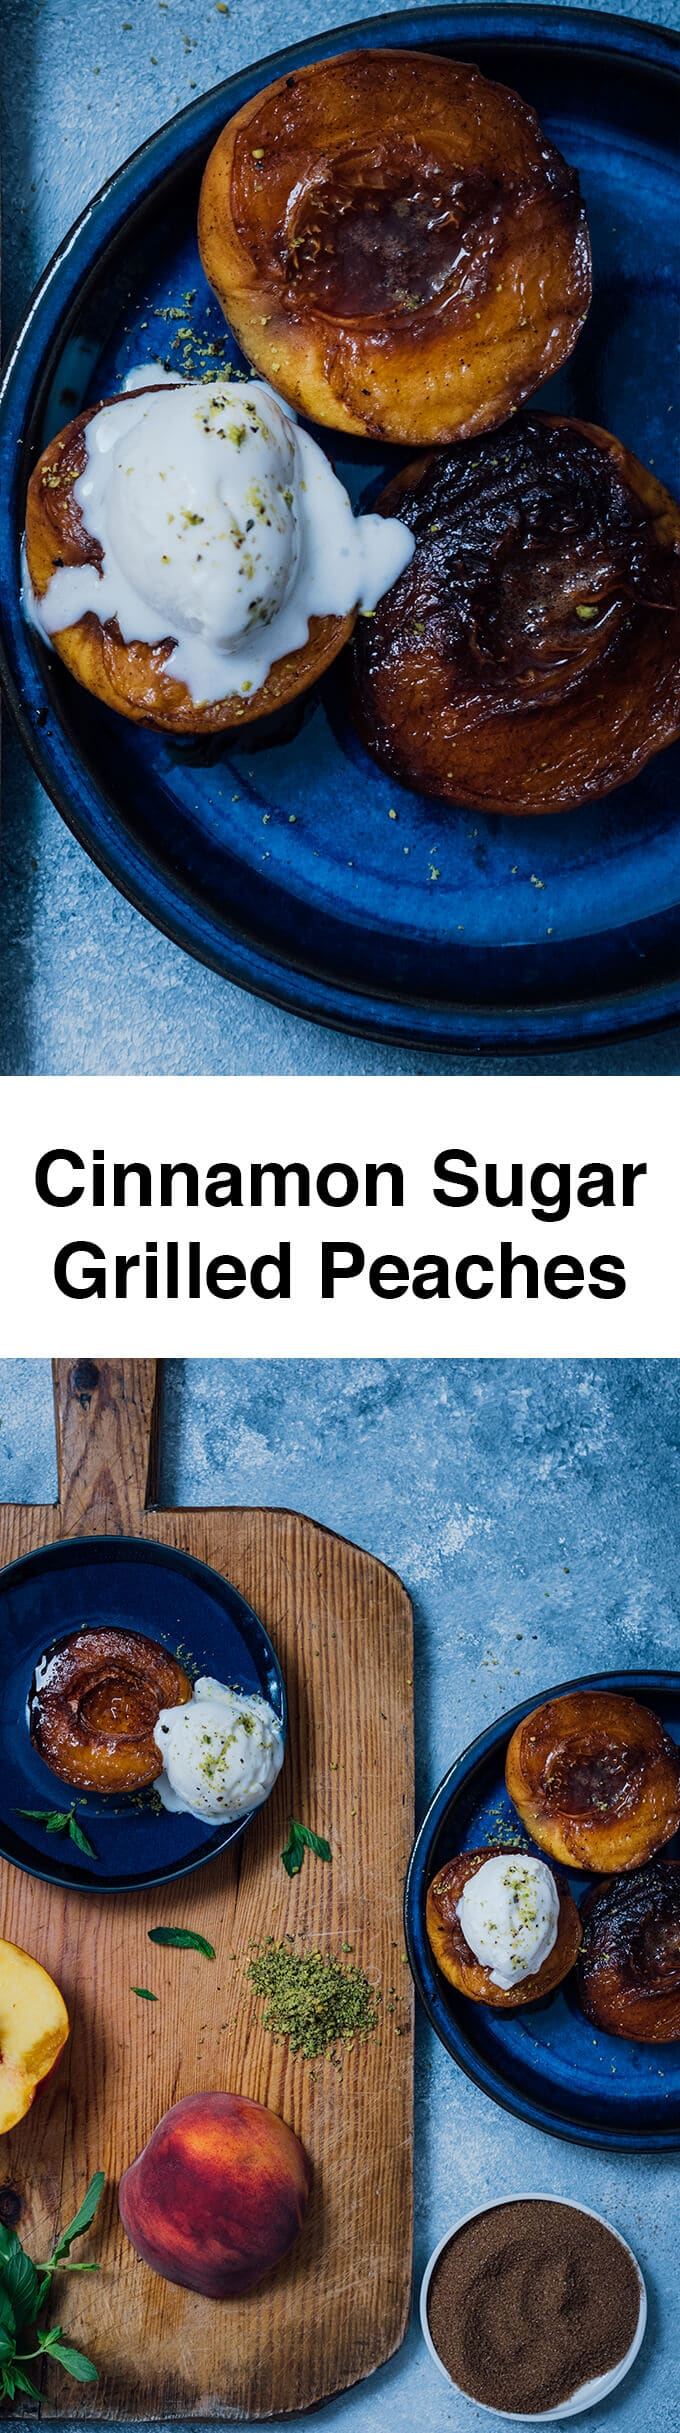 Cinnamon Sugar Grilled Peaches are for those who don't feel like baking. You will be amazed with the taste when you have the first bite! Ready in 10 minutes!